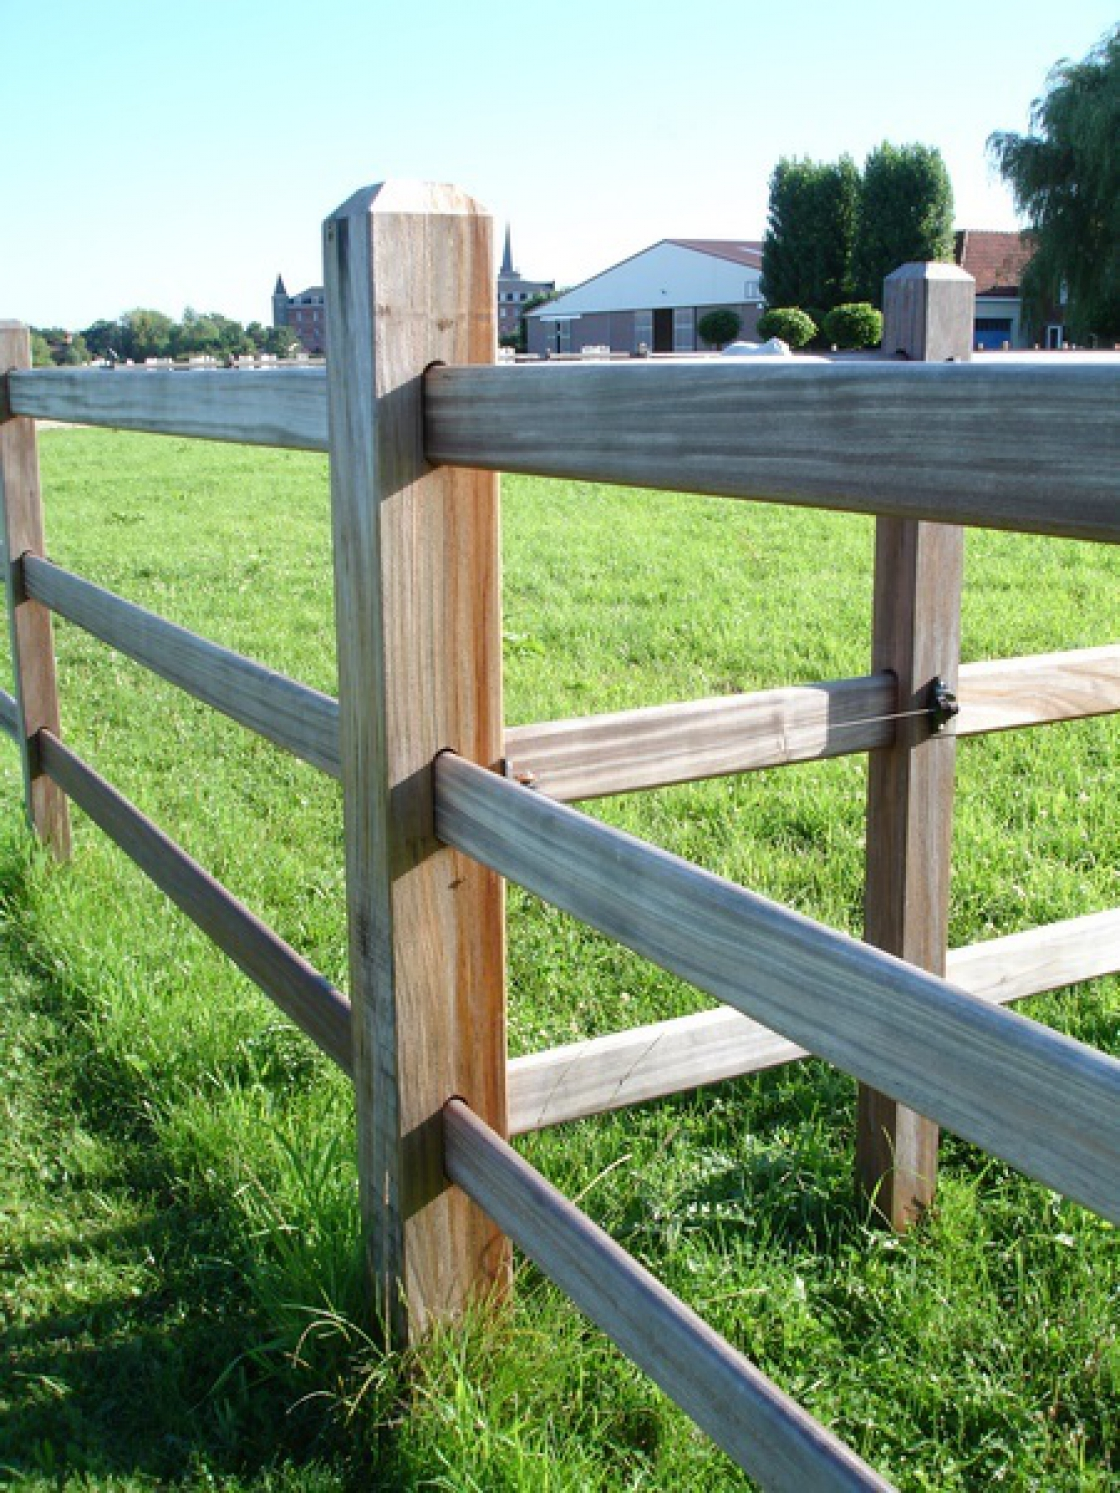 If you choose wooden fencing, you are not only getting a sustainable option, but also one with an authentic look.